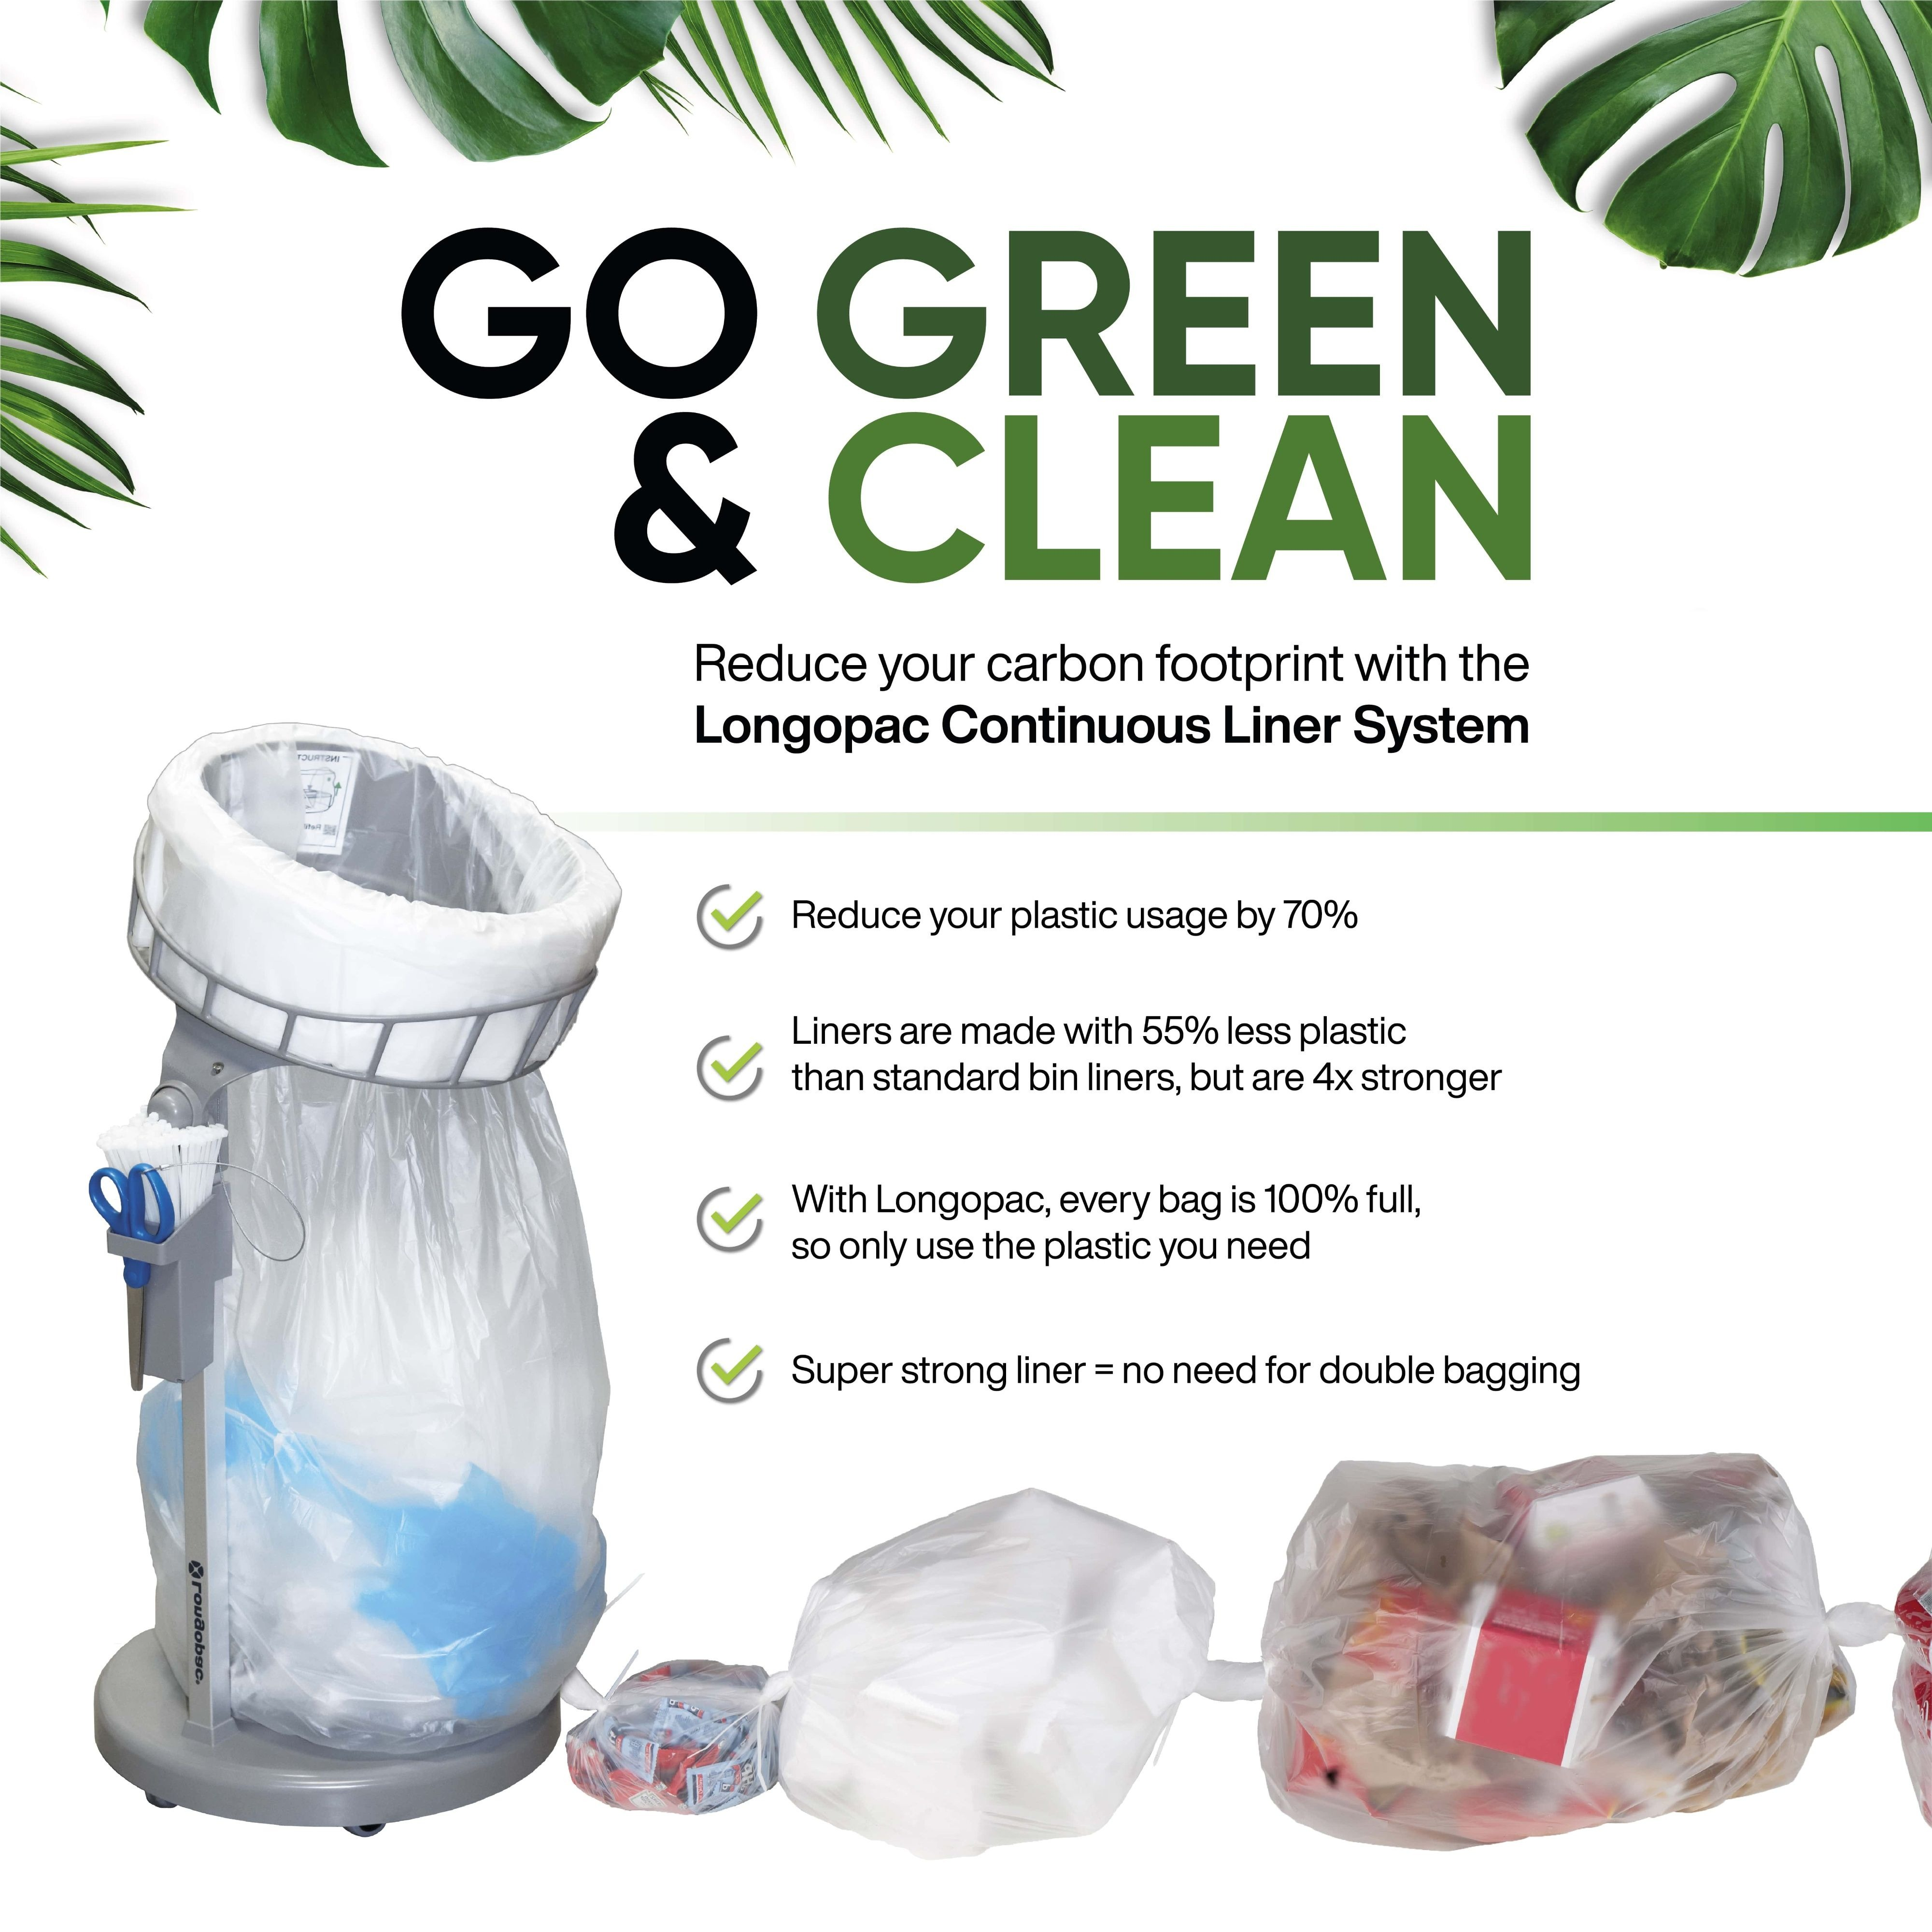 Longopac (Go Green Clean) reduce your plastic usage by 70%